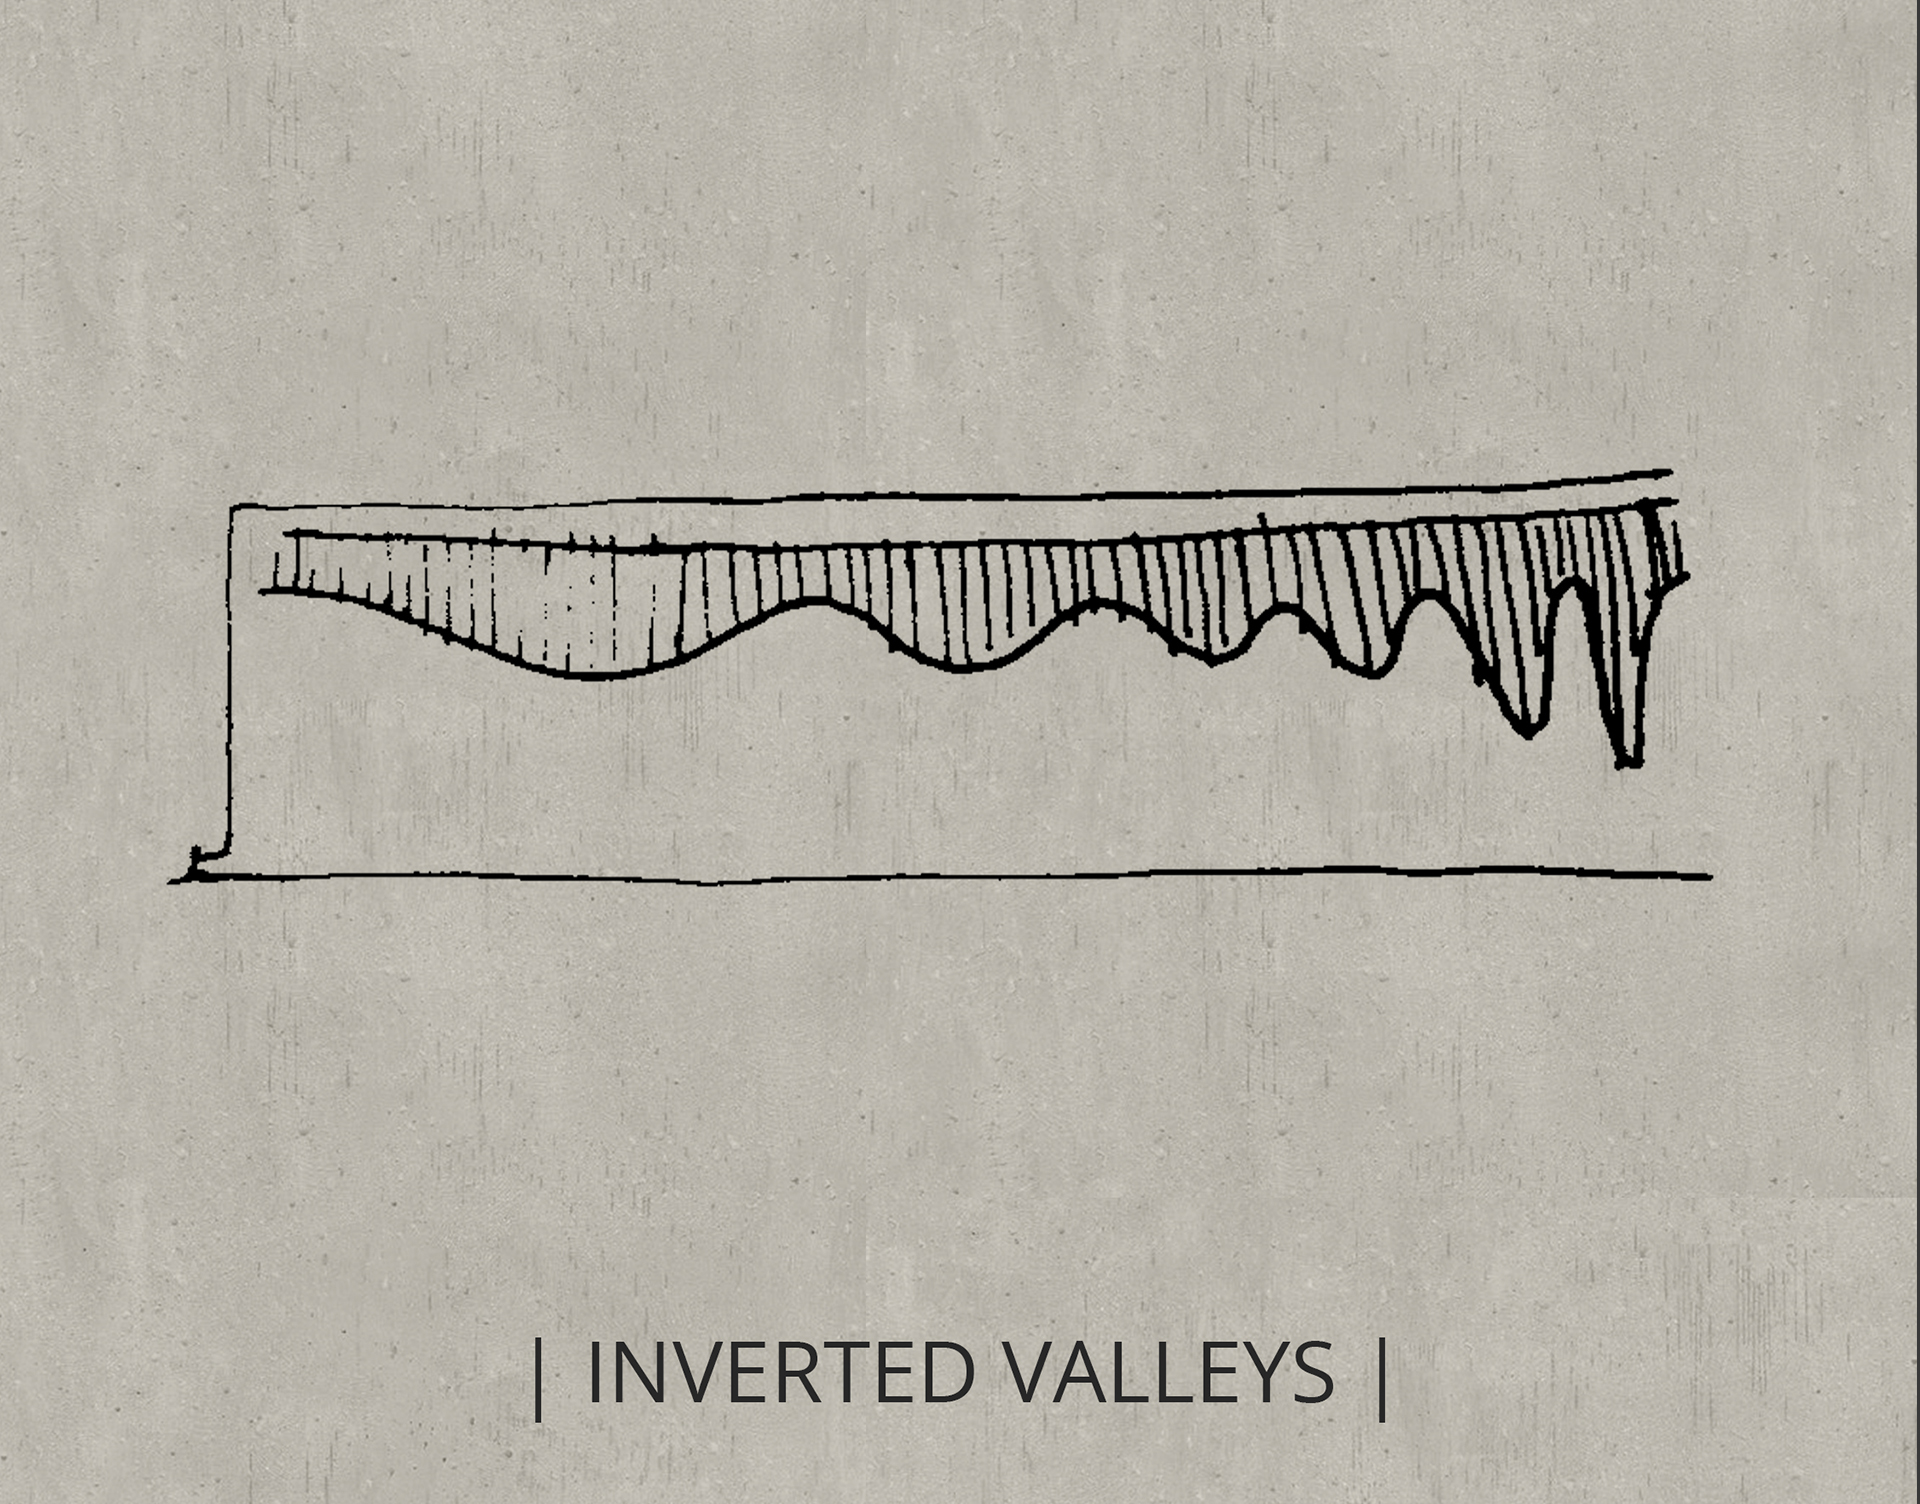 Inverted Valleys